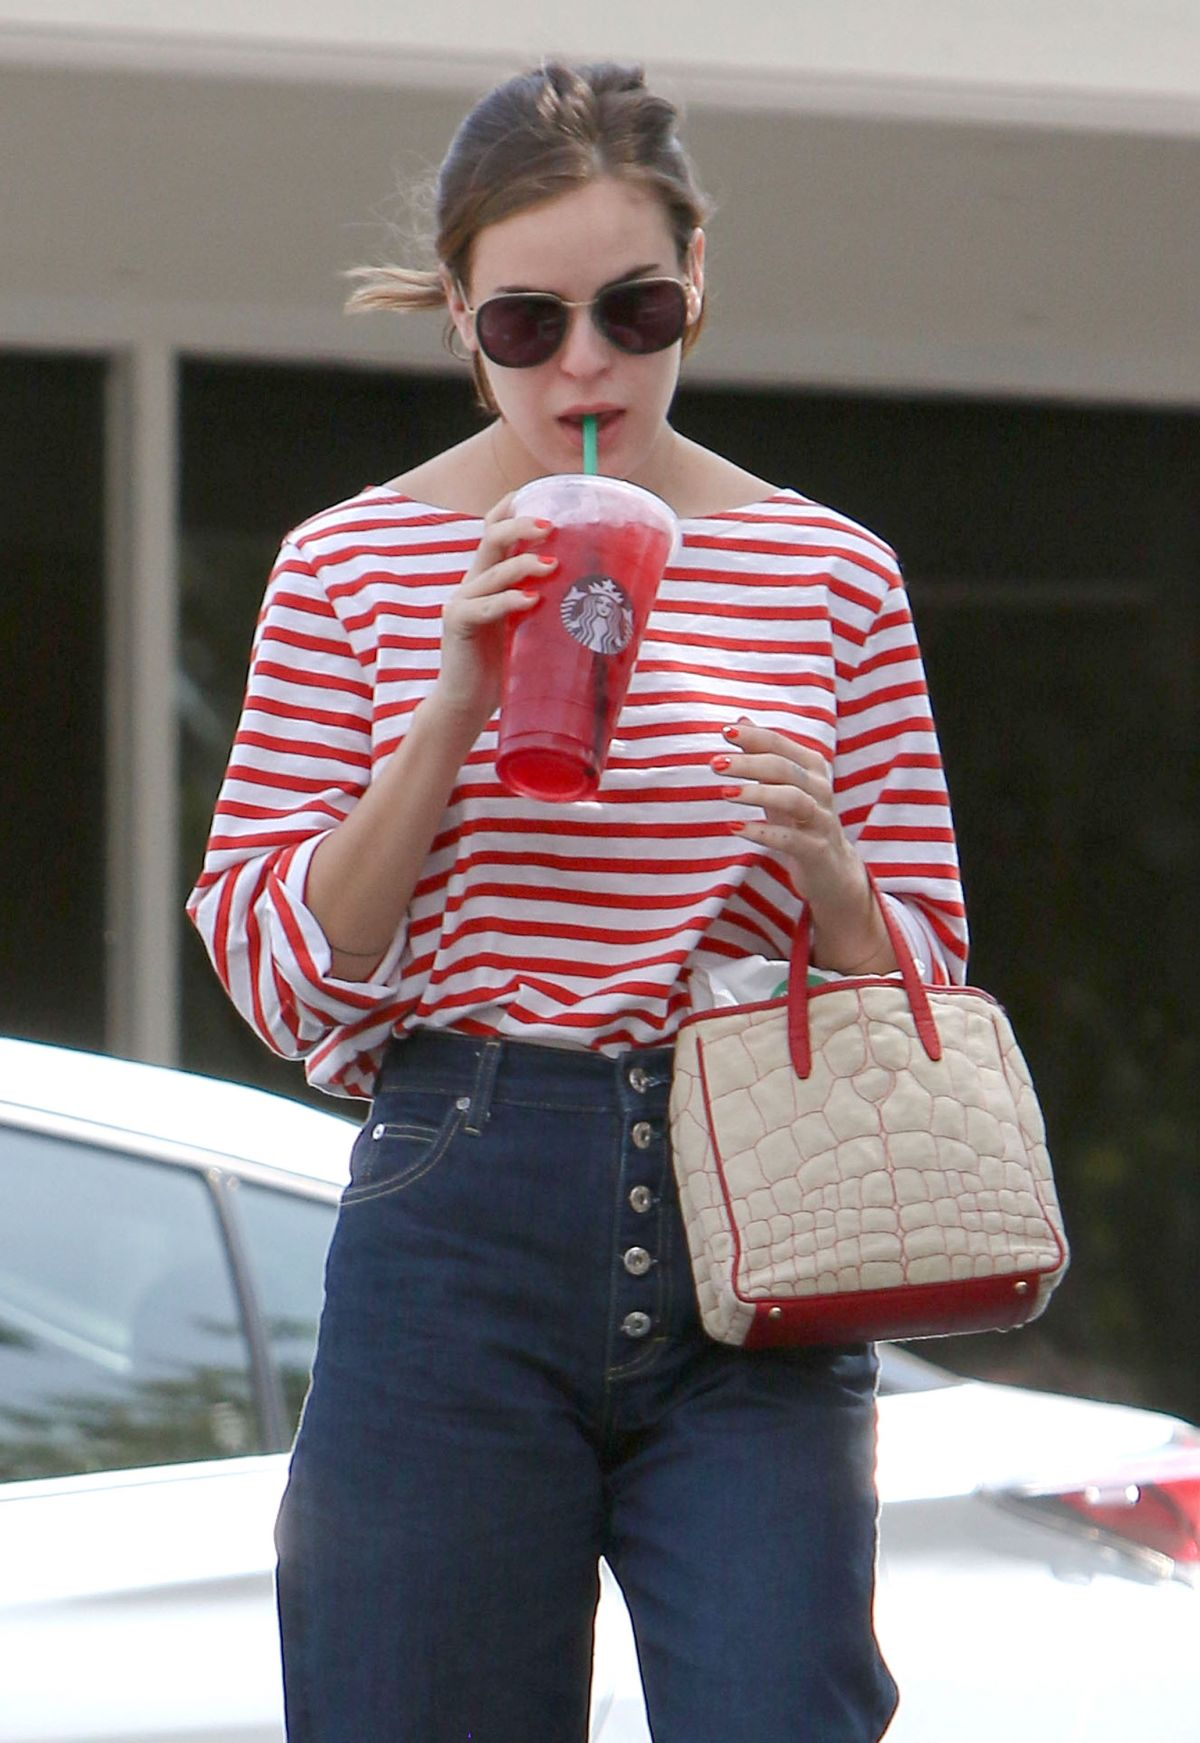 TALLULAH WILLIS at a Starbucks in Bel-Air 04/11/2017